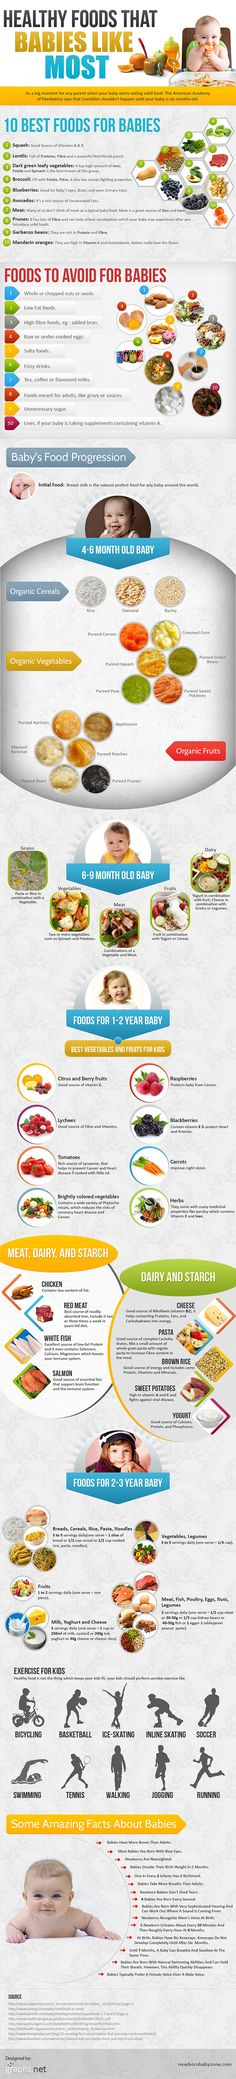 #Healthy Foods That Babies Like Most.